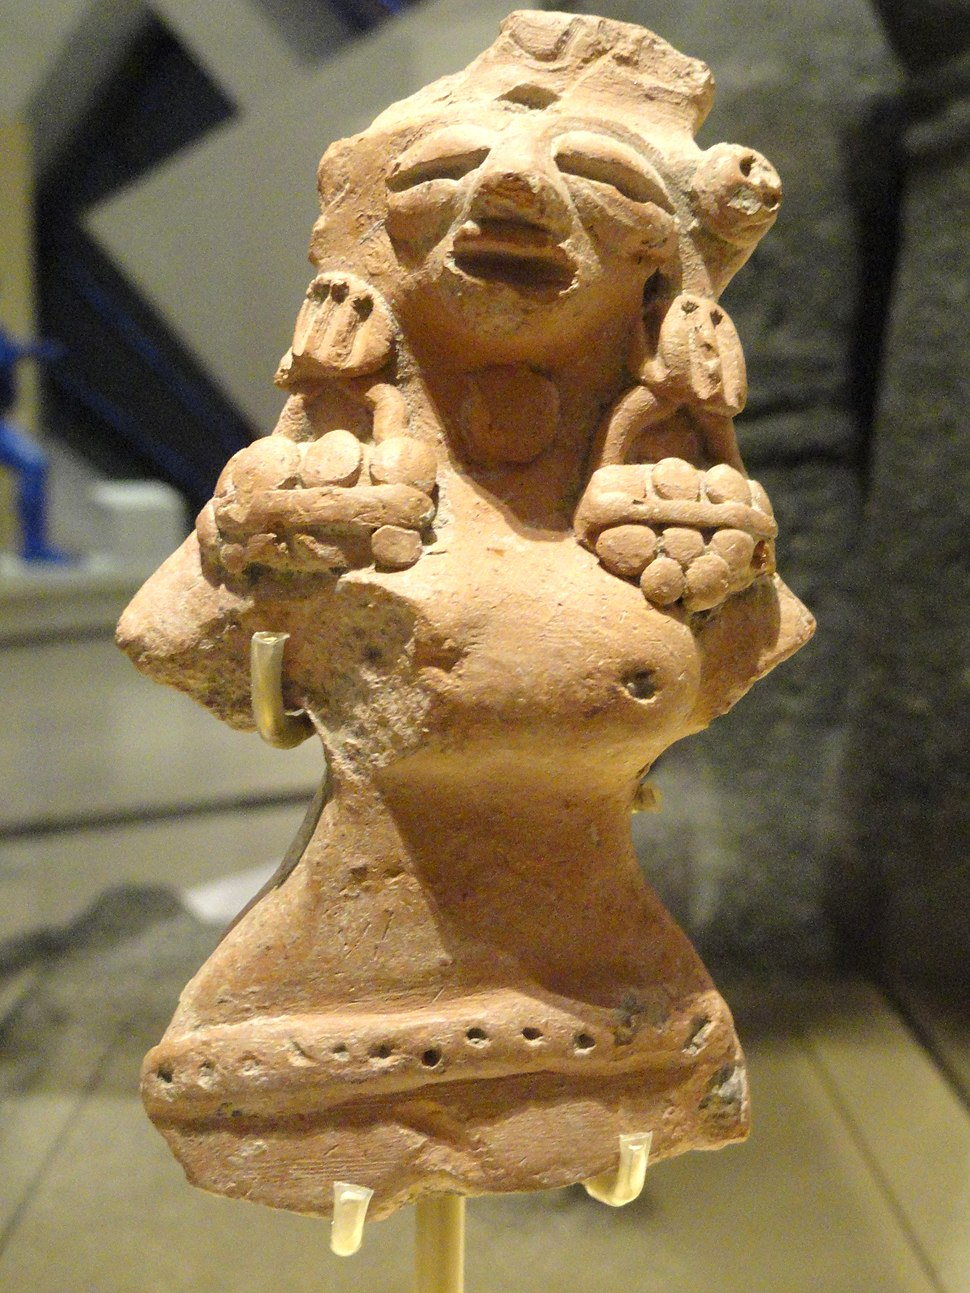 Female figure, possibly a fertility goddess, Indus Valley Tradition, Harappan Phase, c. 2500-1900 BC - Royal Ontario Museum - DSC09701